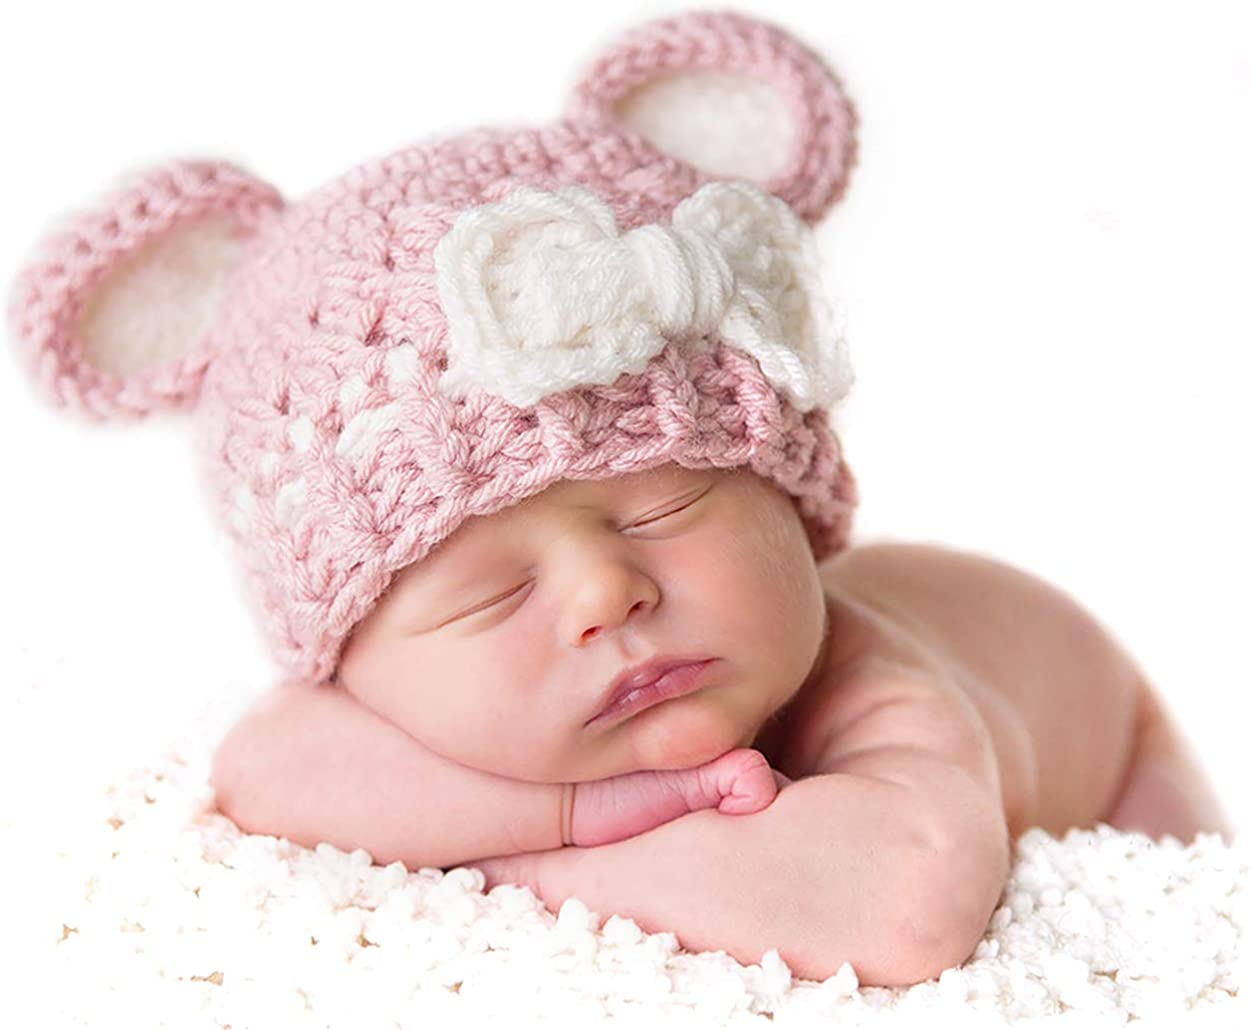 Baby Shower Gift for Newborn Girls Set of 3 Baby Beanies for Newborn to 3 mo Free US Shipping Crochet Baby Girl Beanie Hats for Triplets